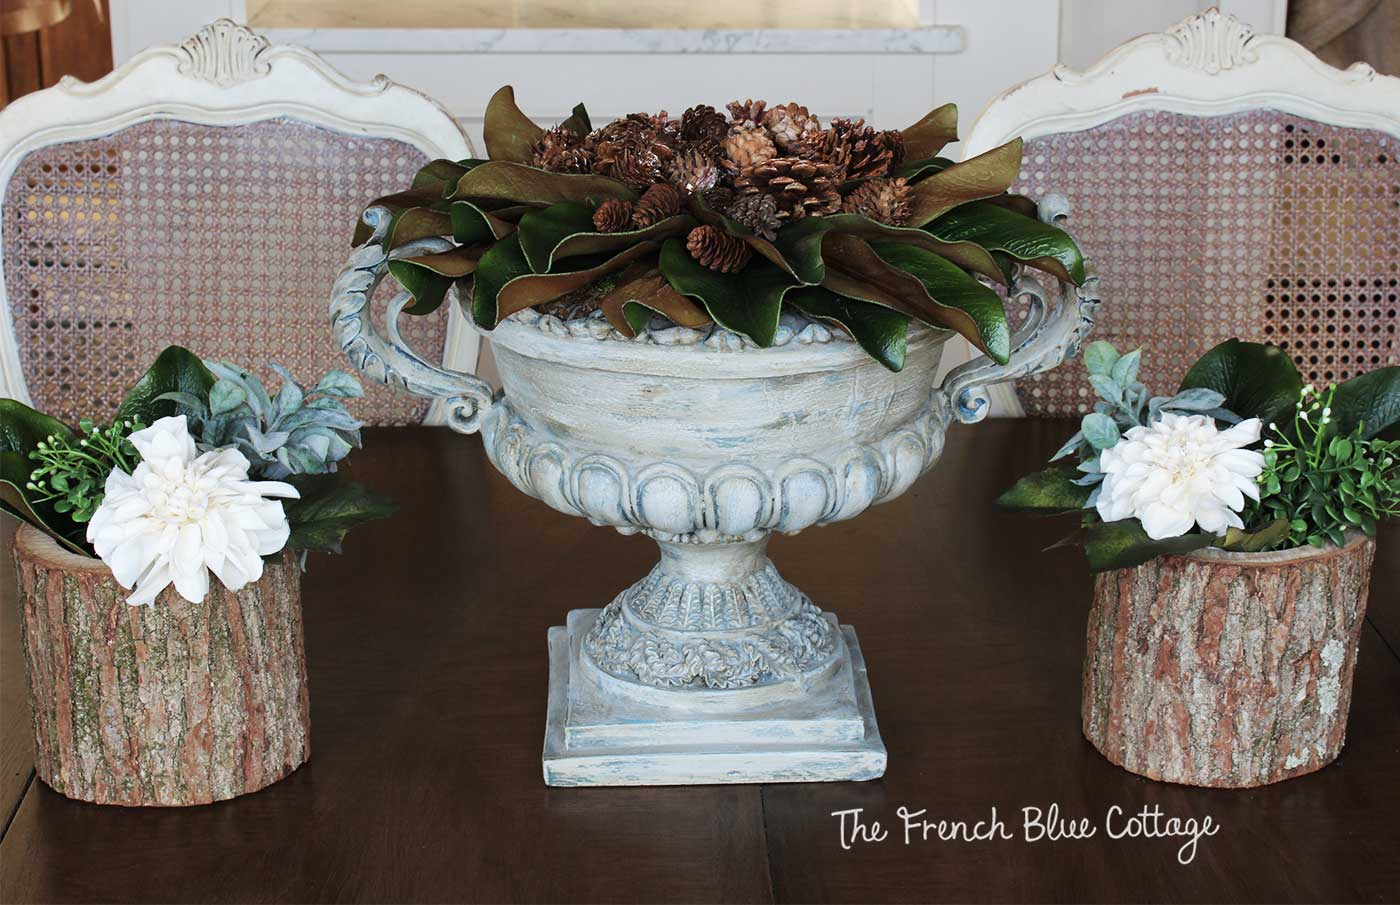 Simple winter table with magnolia, pinecones, and flowers.